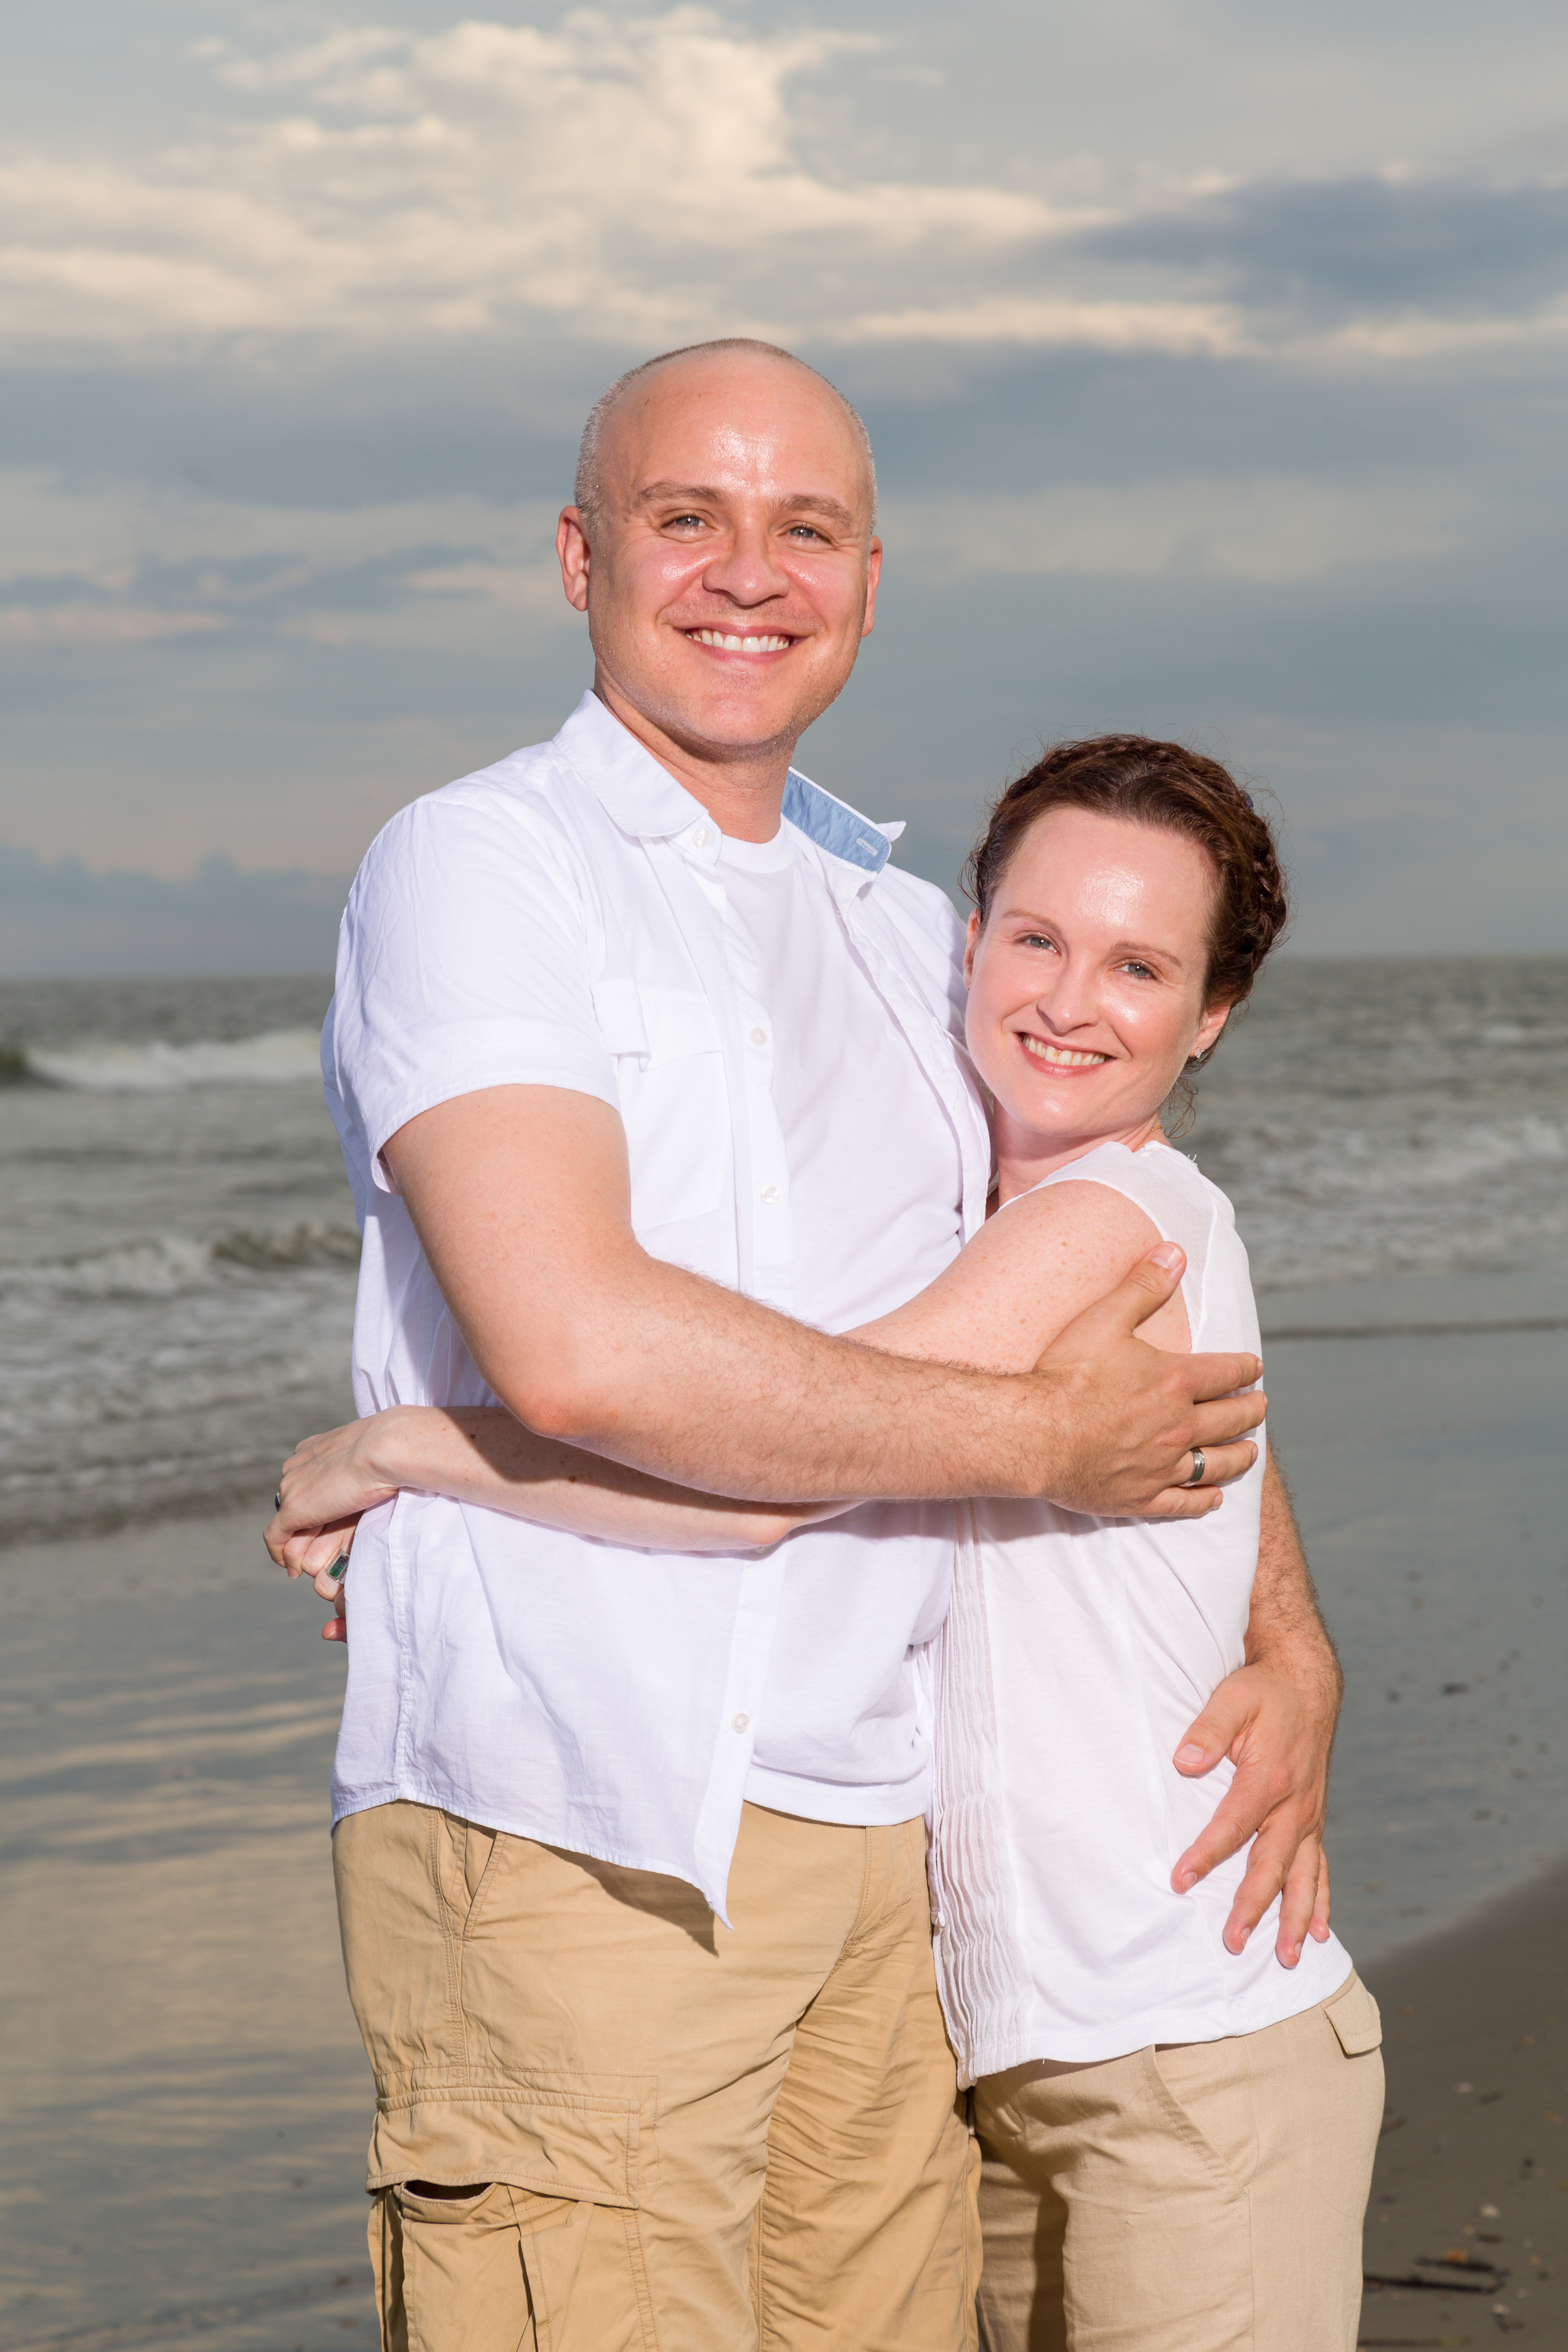 Me and my partner Andrew at the beach in Isle of Palms, SC